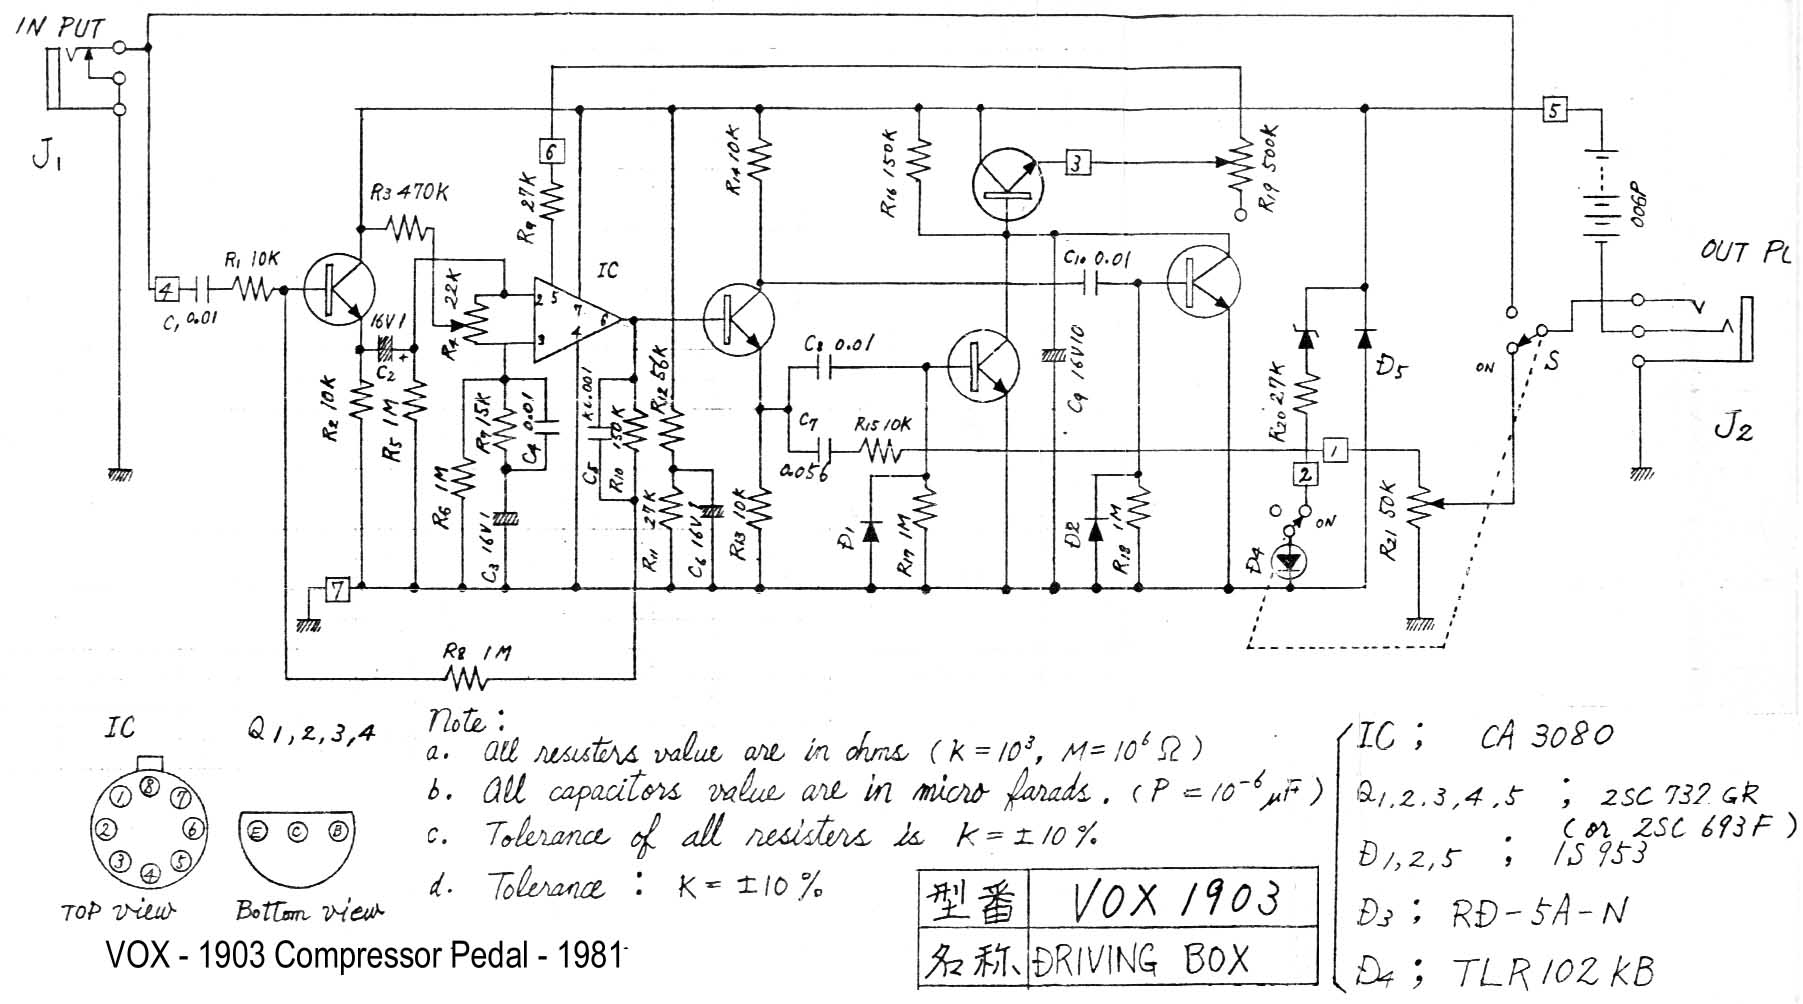 Amplifier Schematic Diagram To Compressor Great Installation Of Ptc Relay Refrigerator Wiring Compresor Air